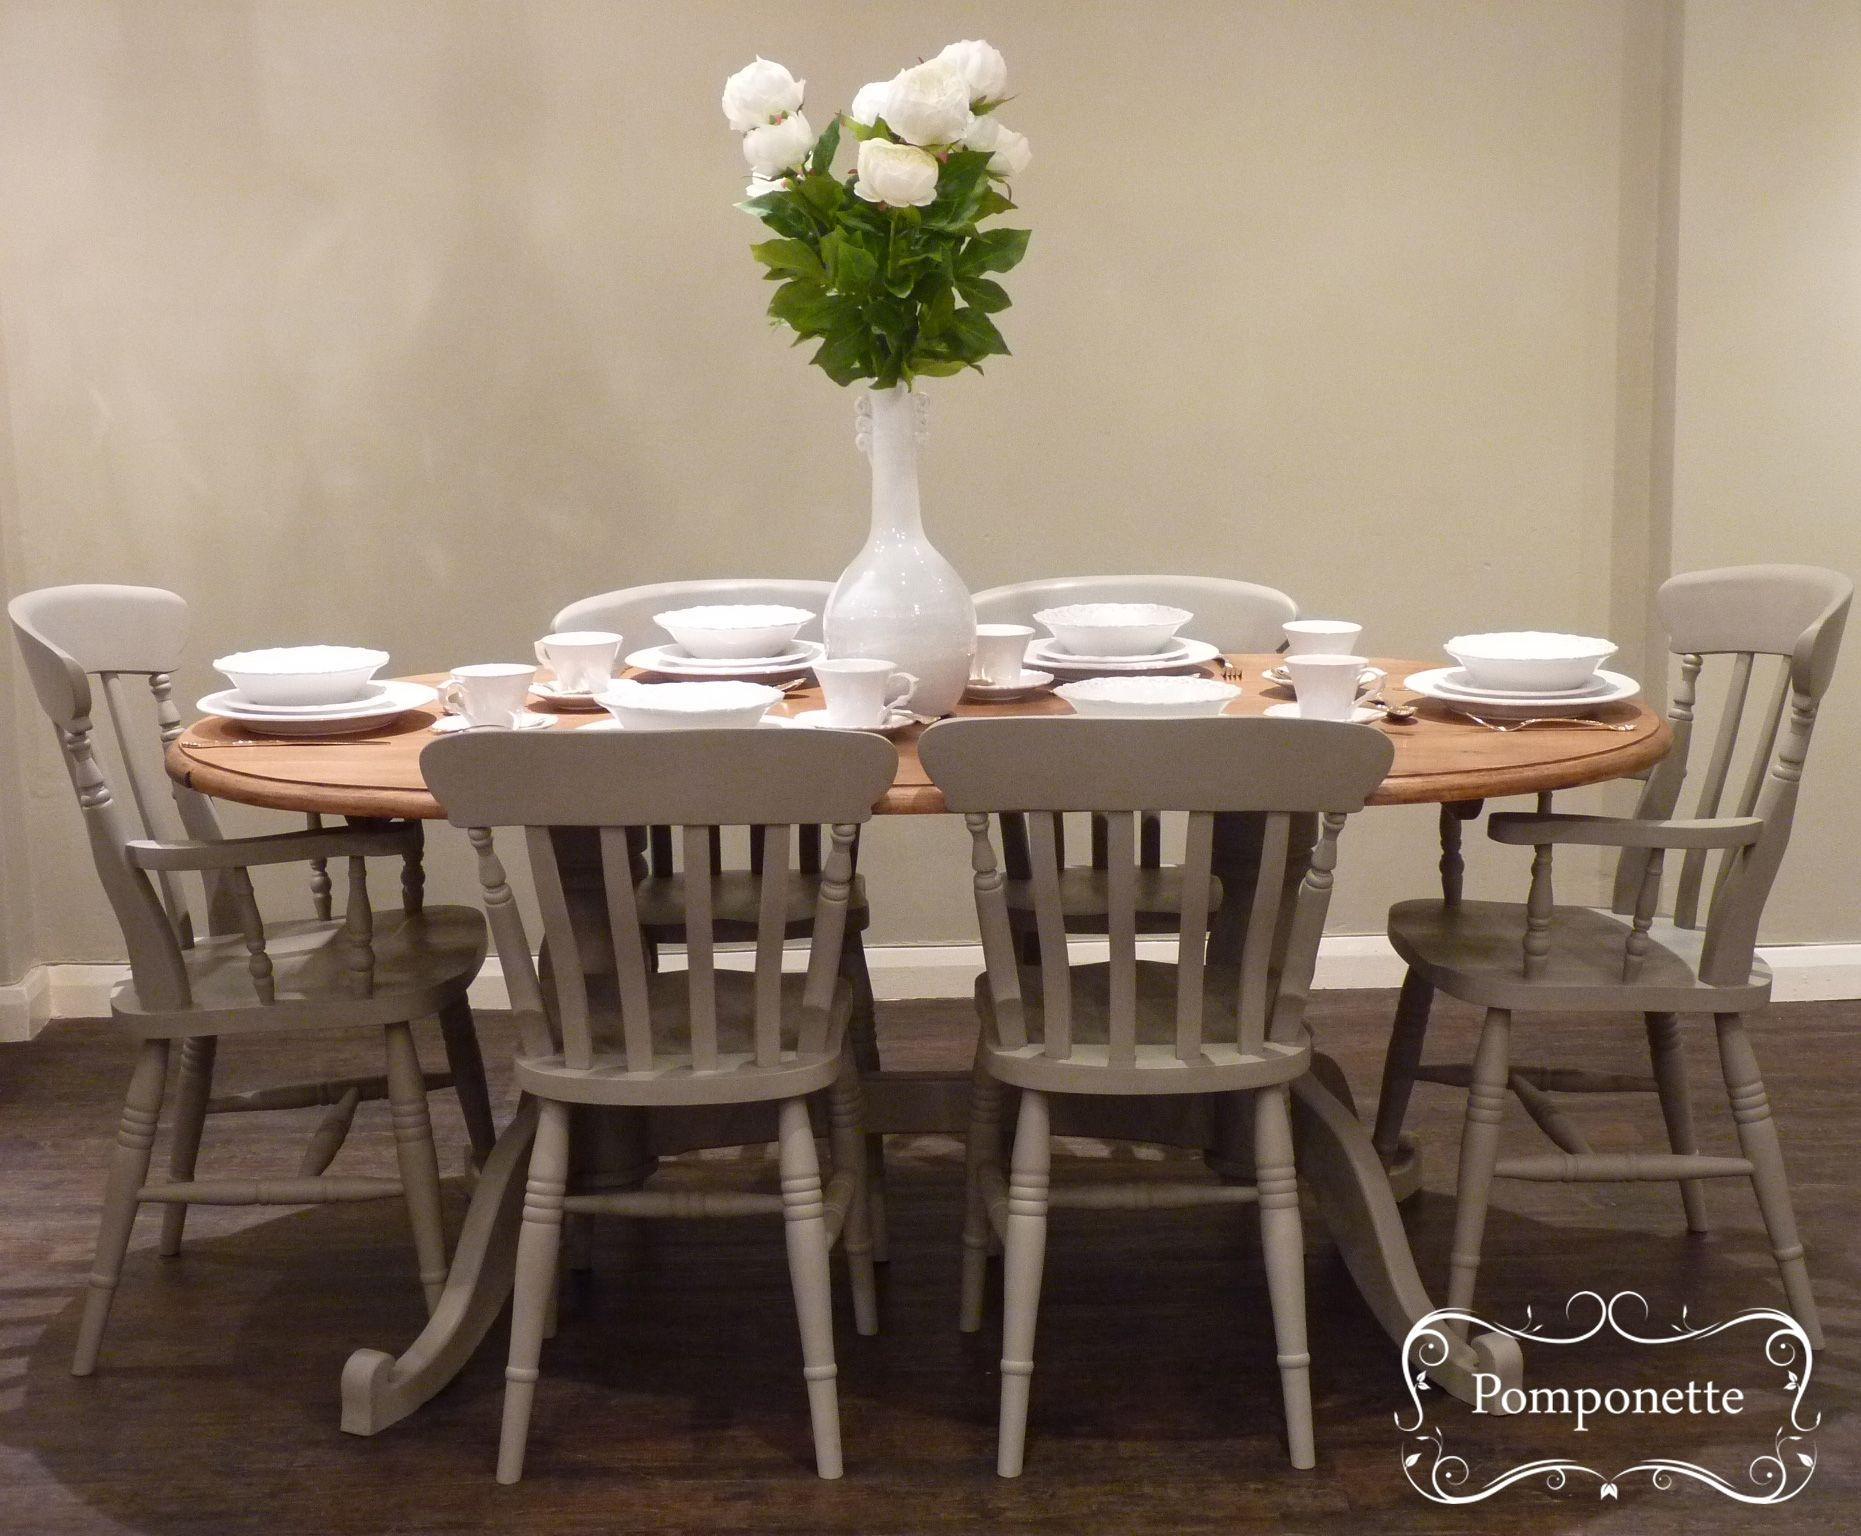 Oval Dining Table & Six Chairs. We have created a mellow mushroom ...